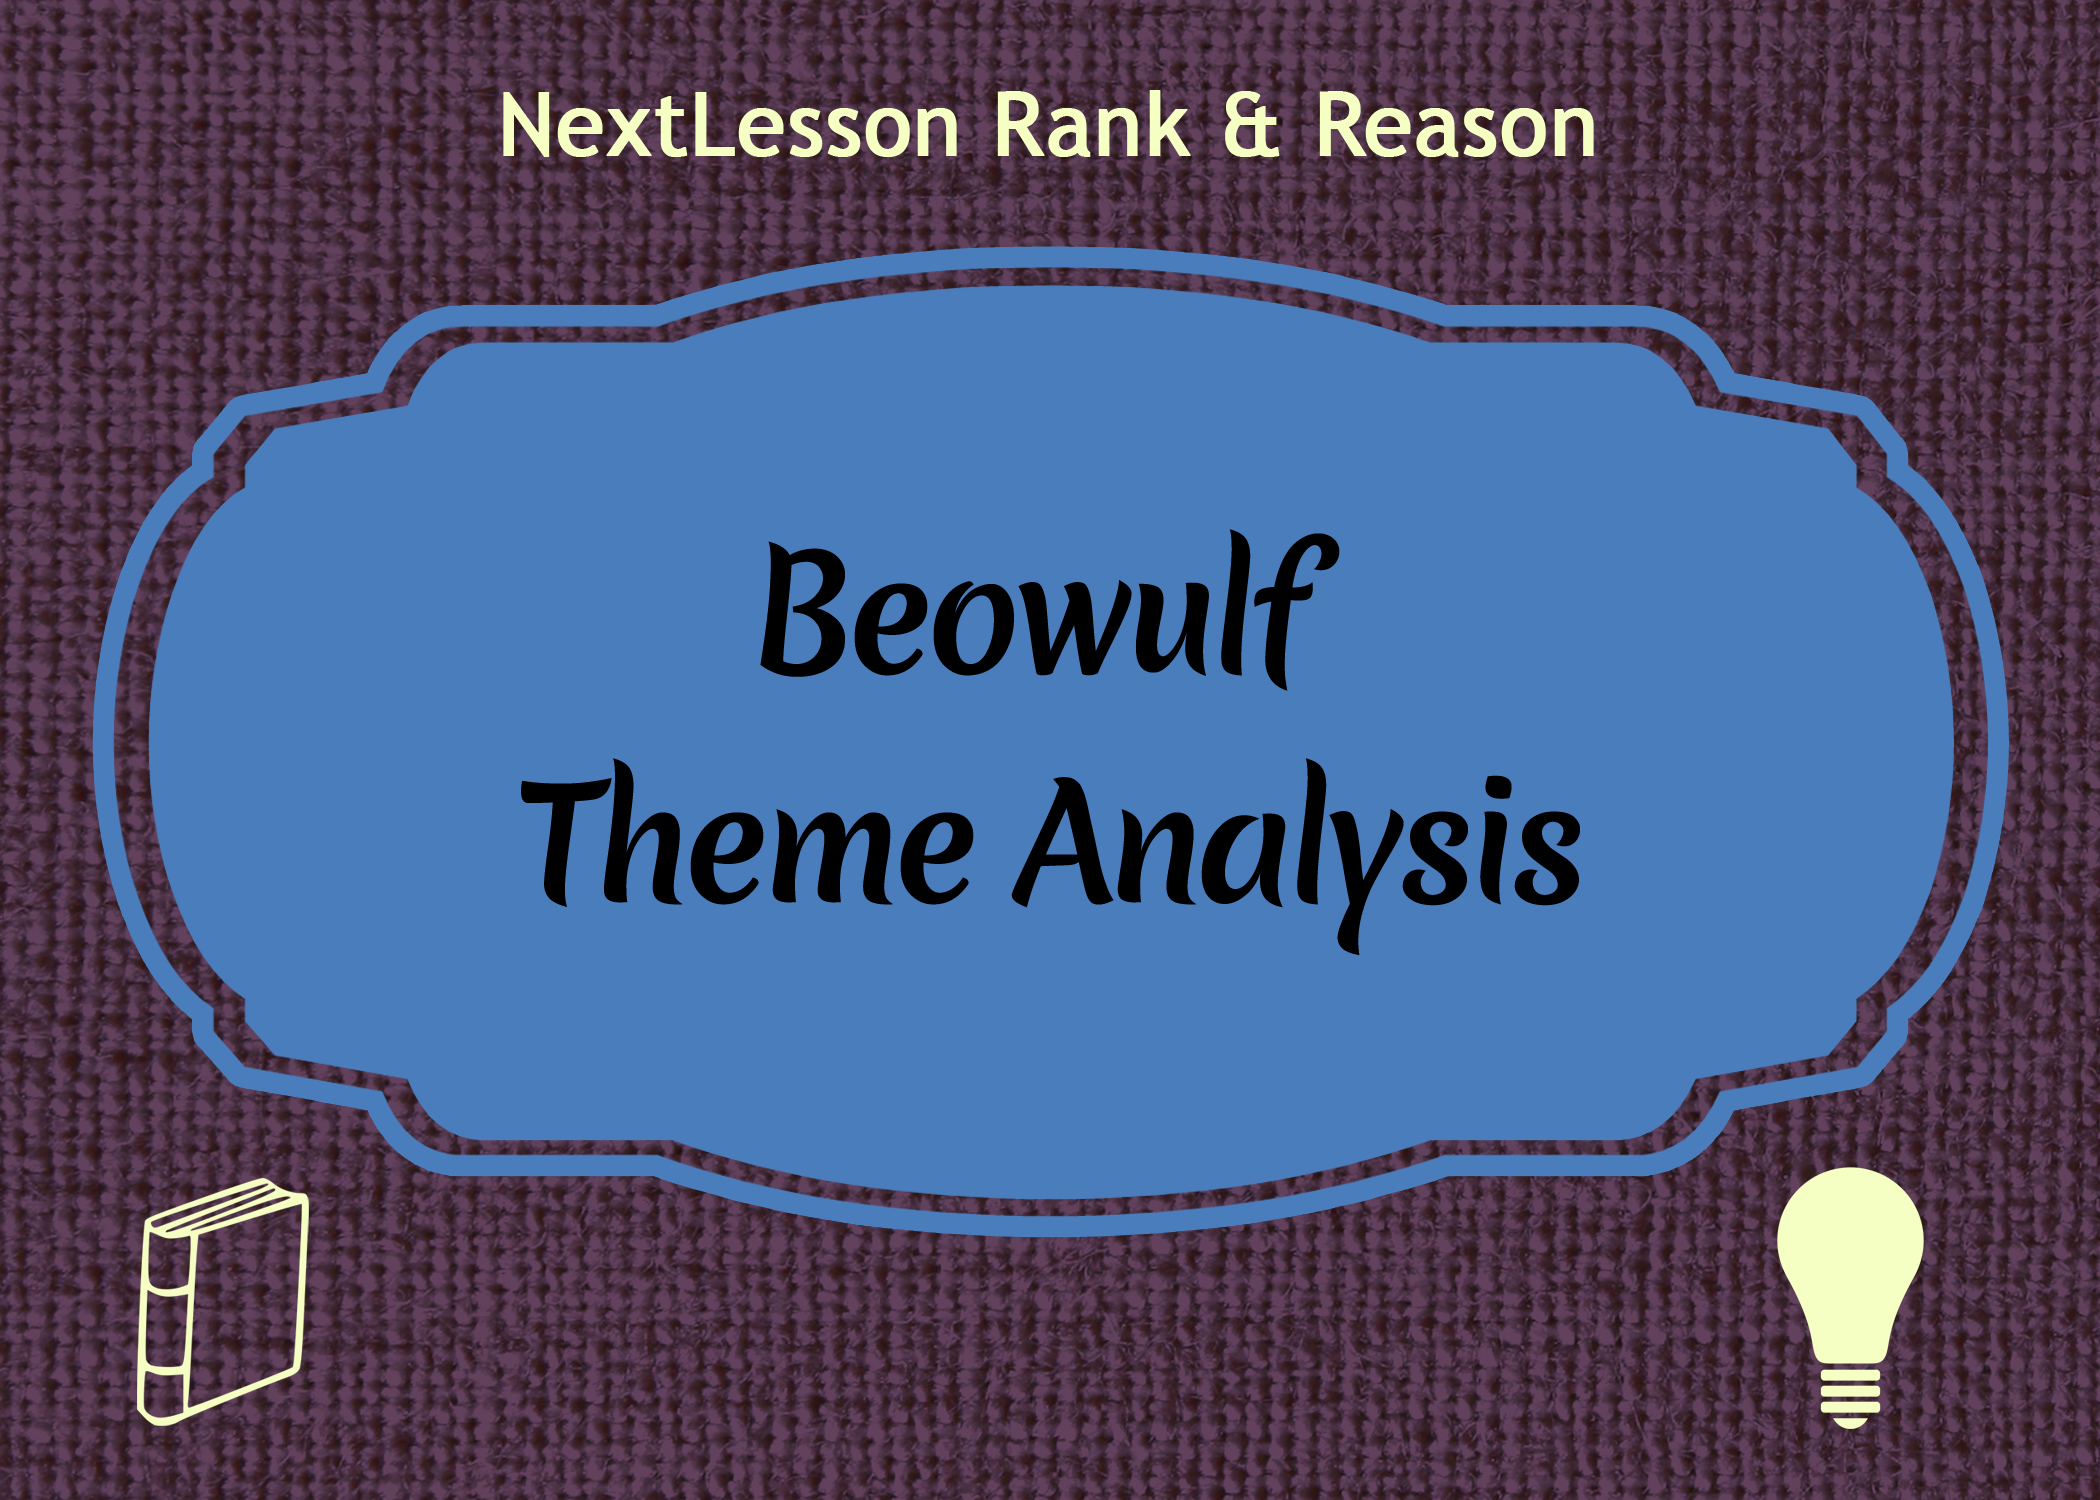 theme analysis of beowulf Themes that are present in beowulf include loyalty, reputation, generosity,  hospitality, envy, revenge, the search for identity, the difference between good.